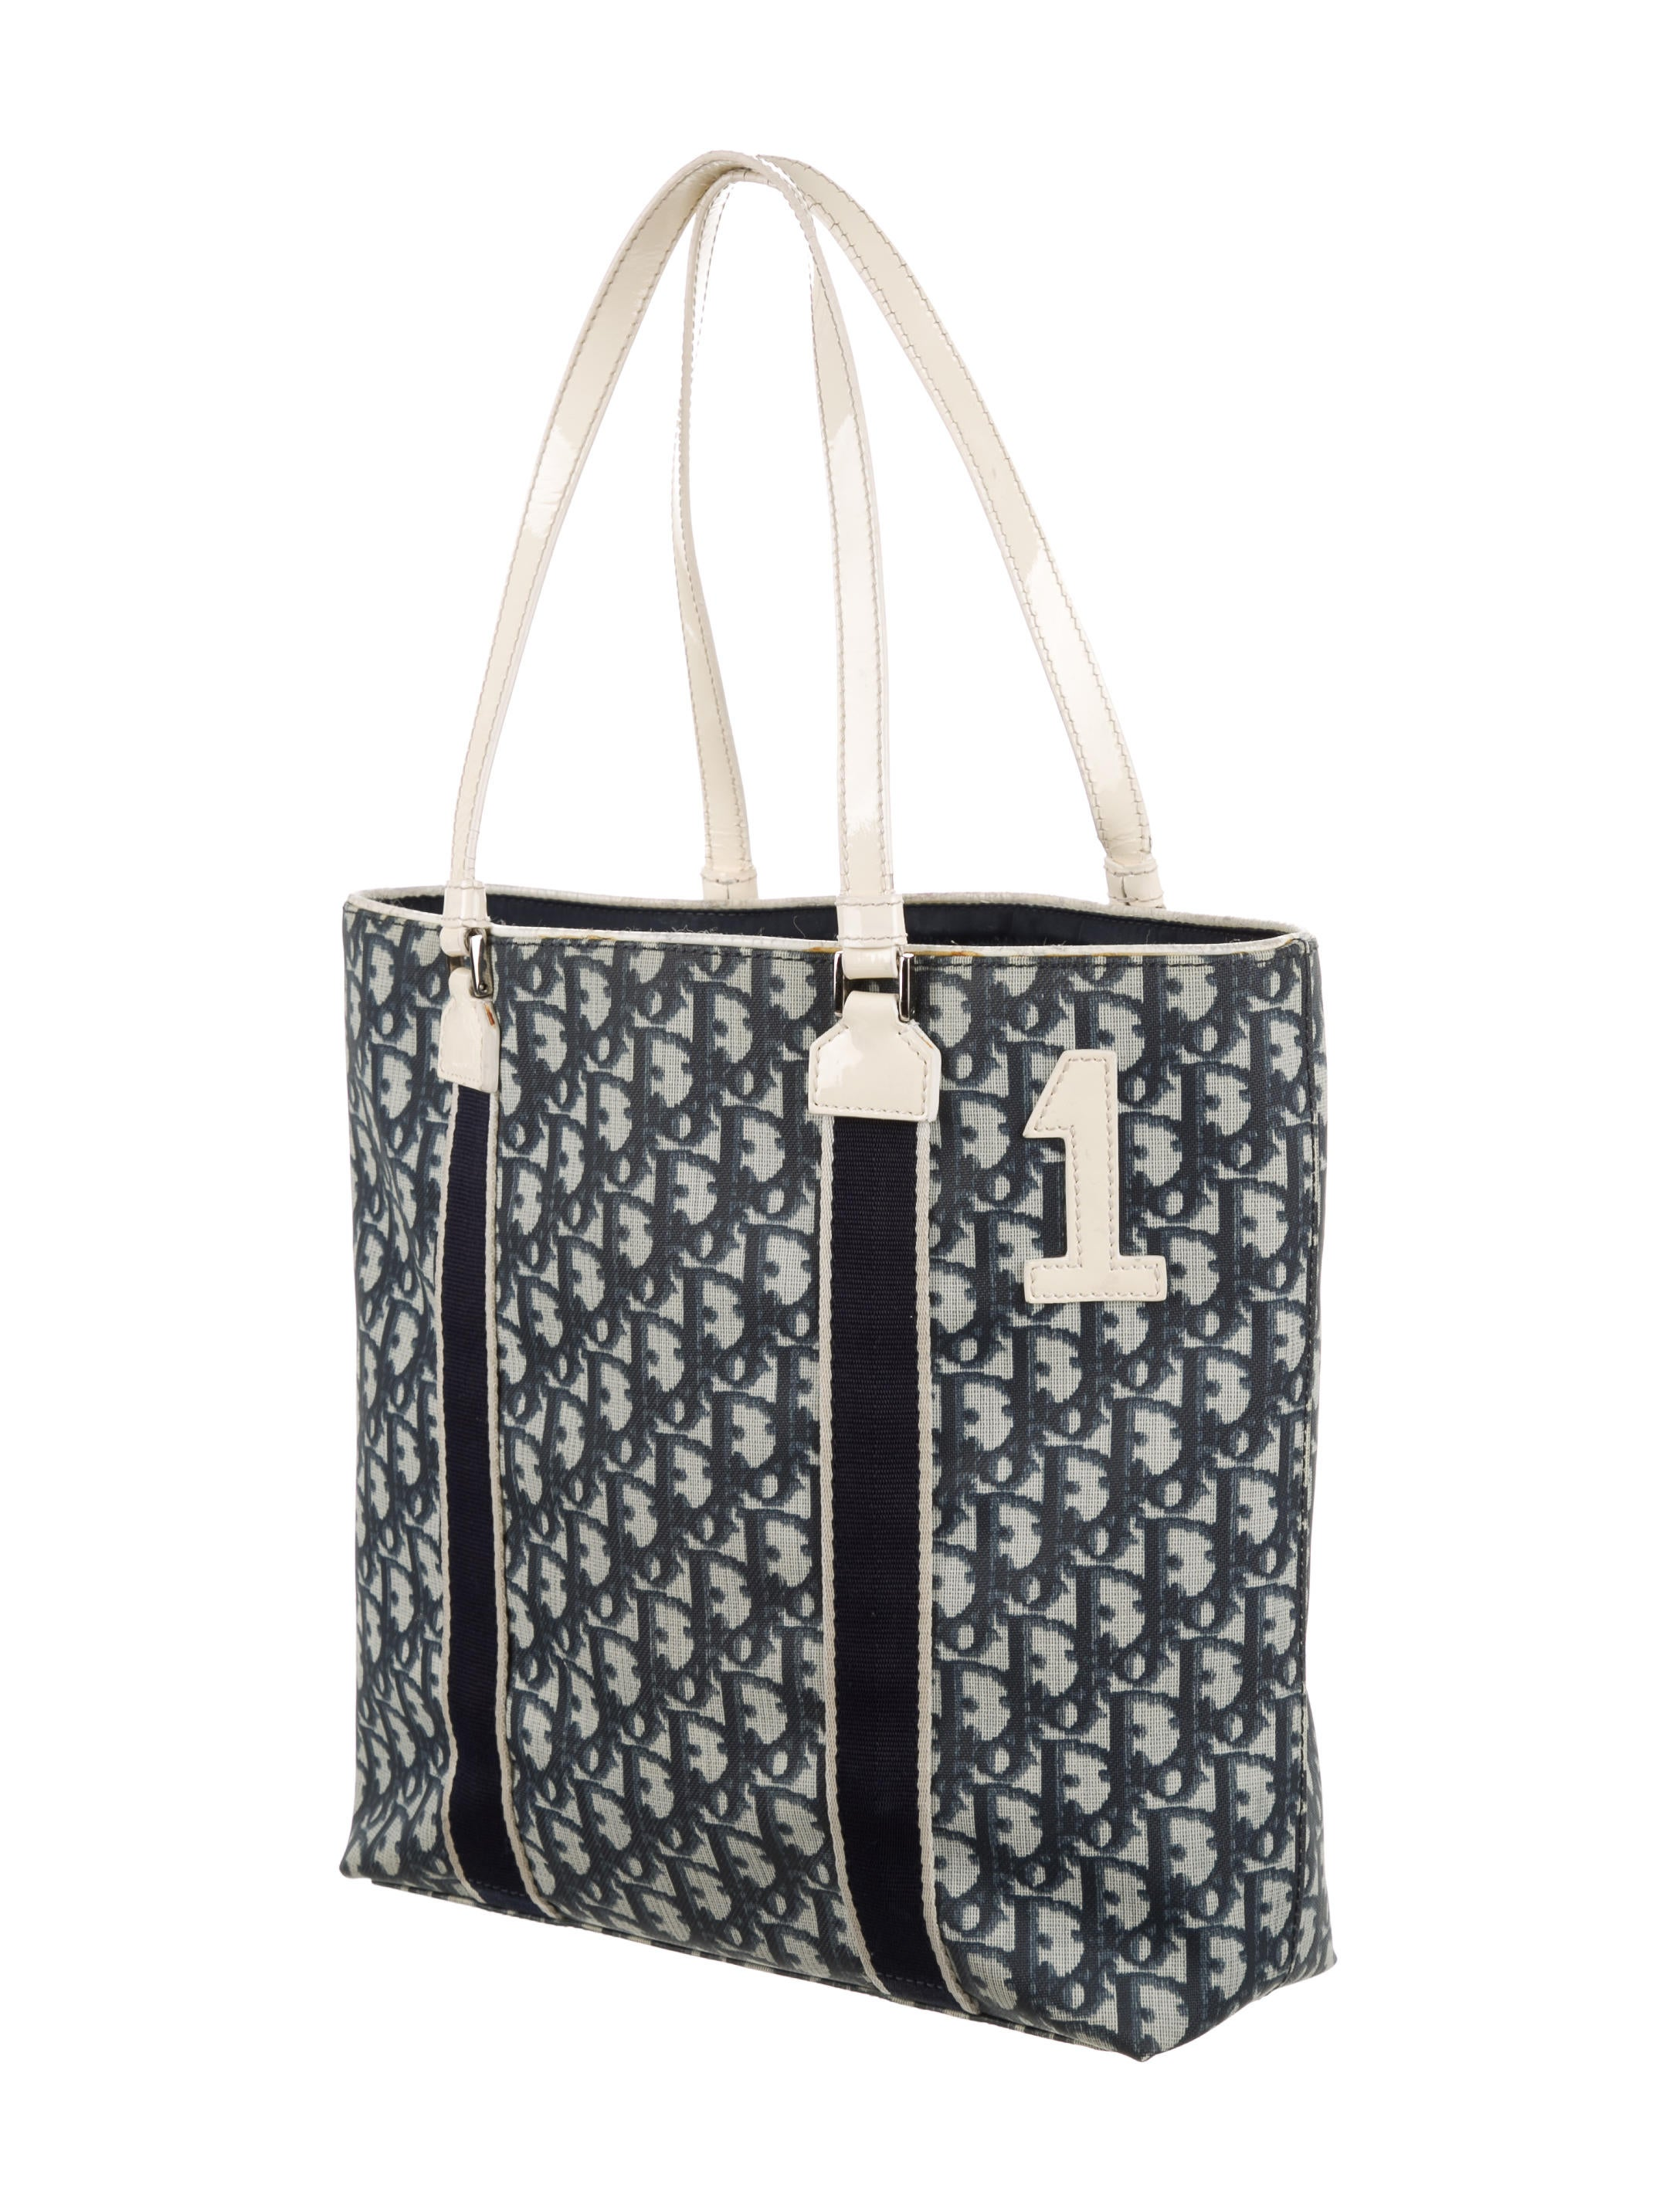 4fe9f7b90 Christian Dior Tote Bag V&a | Stanford Center for Opportunity Policy ...